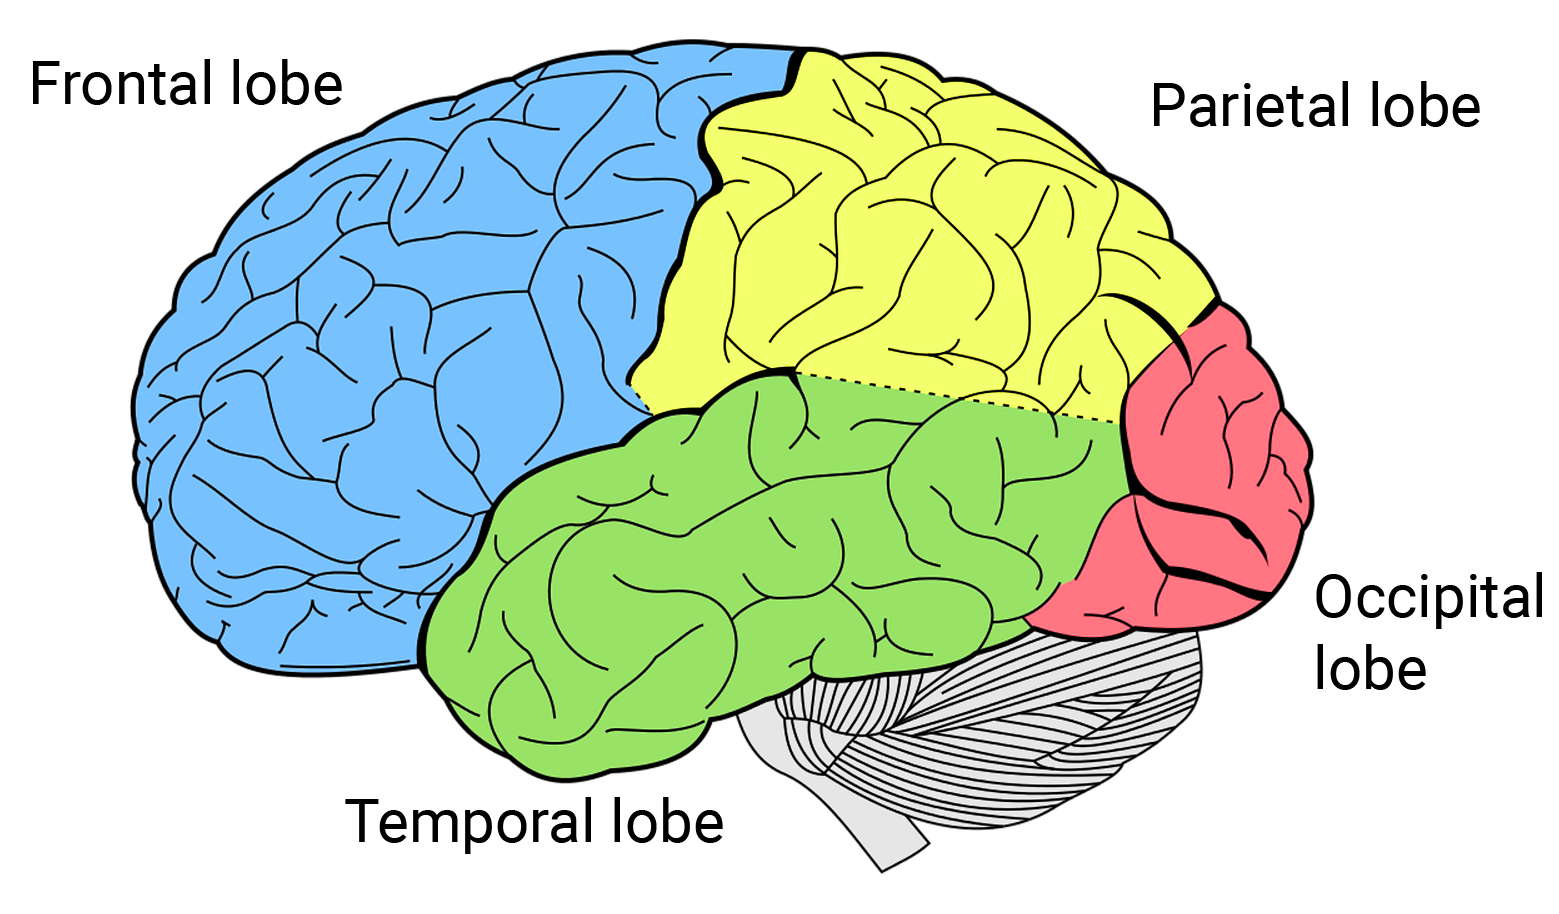 https://qbi.uq.edu.au/files/7887/QBI-brain-lobes-neuroscience.png